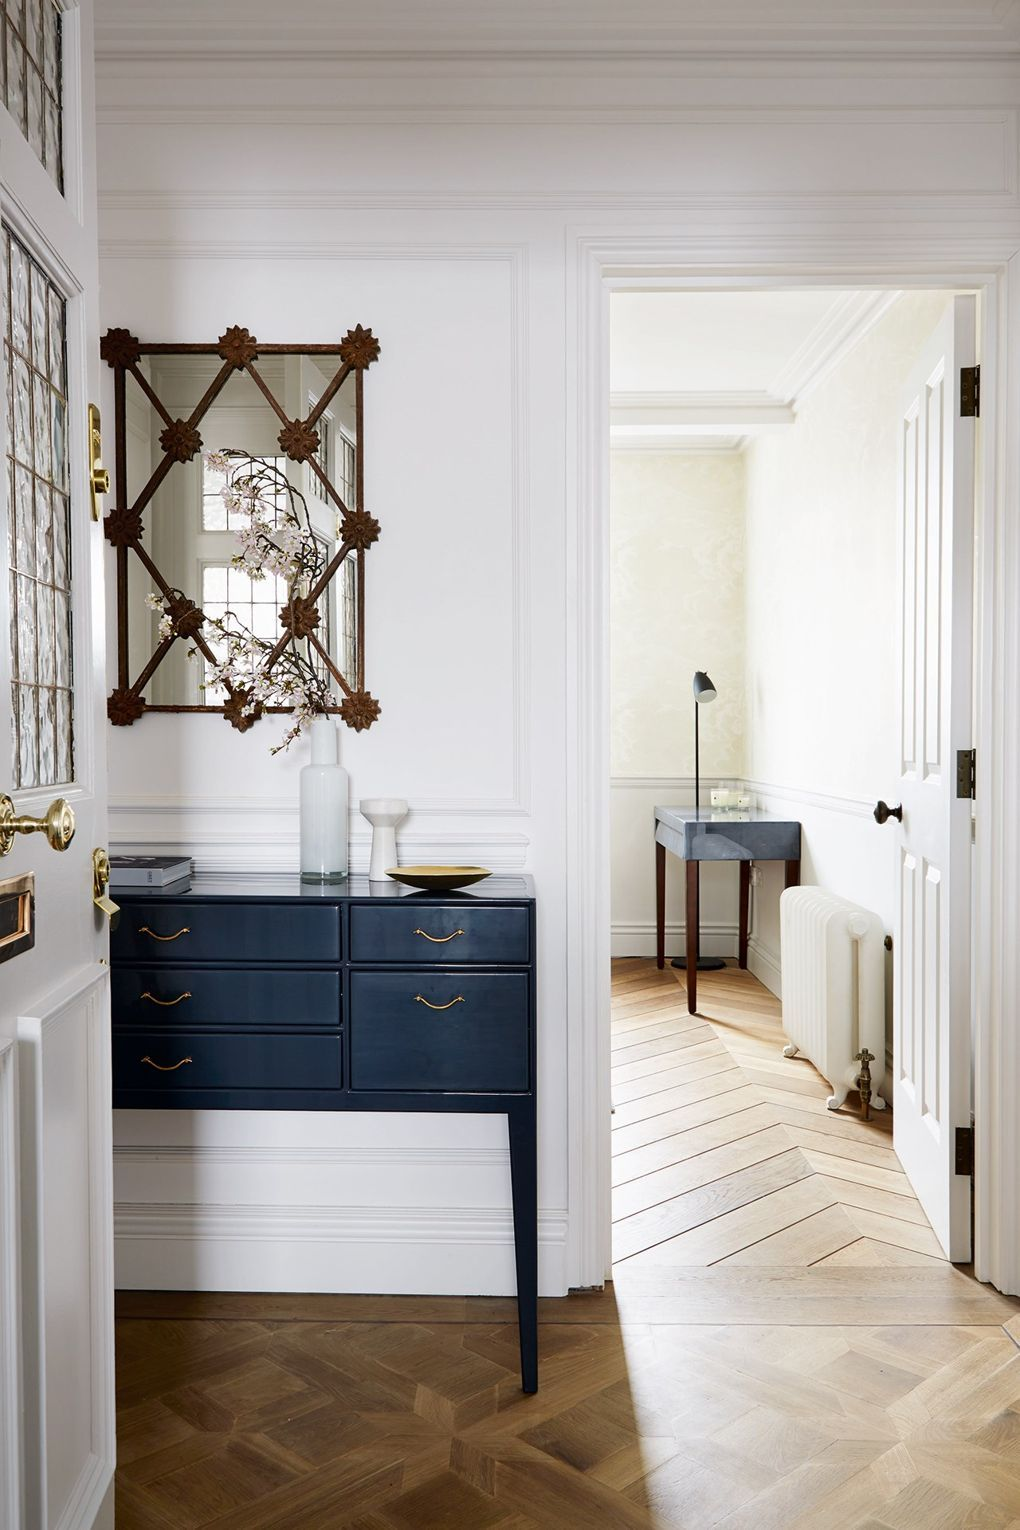 Small hallway furniture  The mirror above the hall table is decorative while also creating